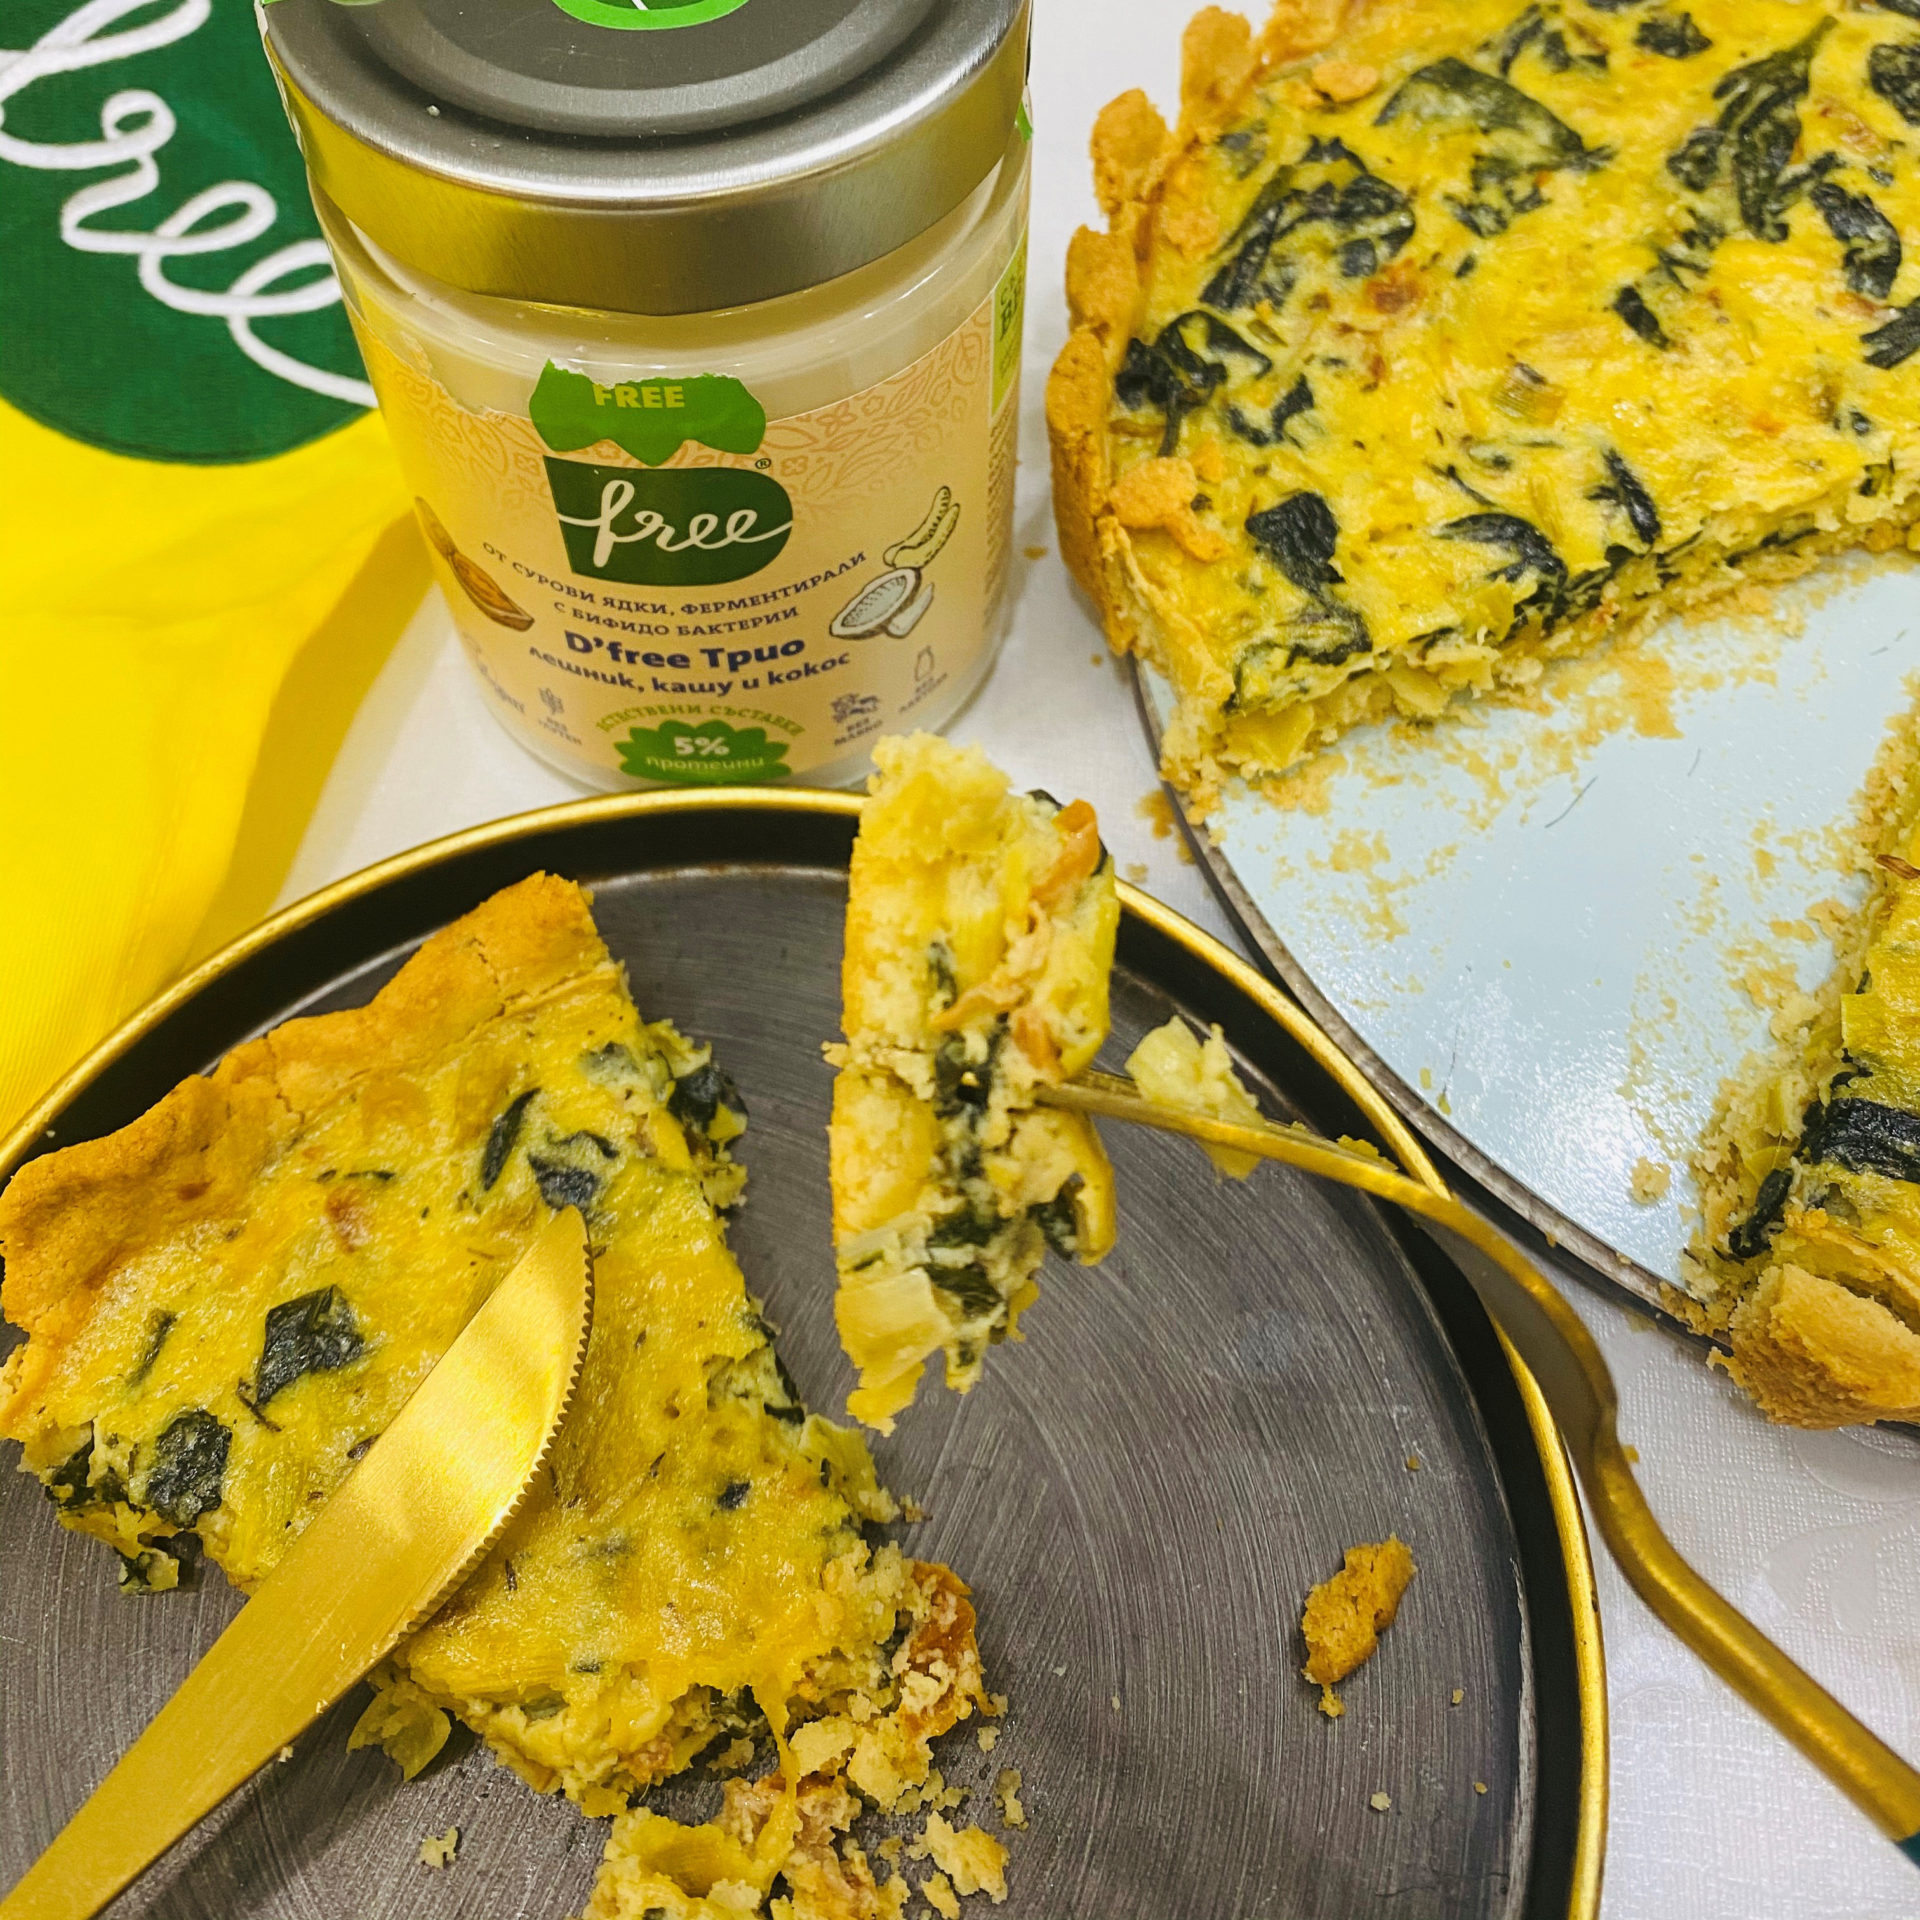 D'free quiche with leek and spinach